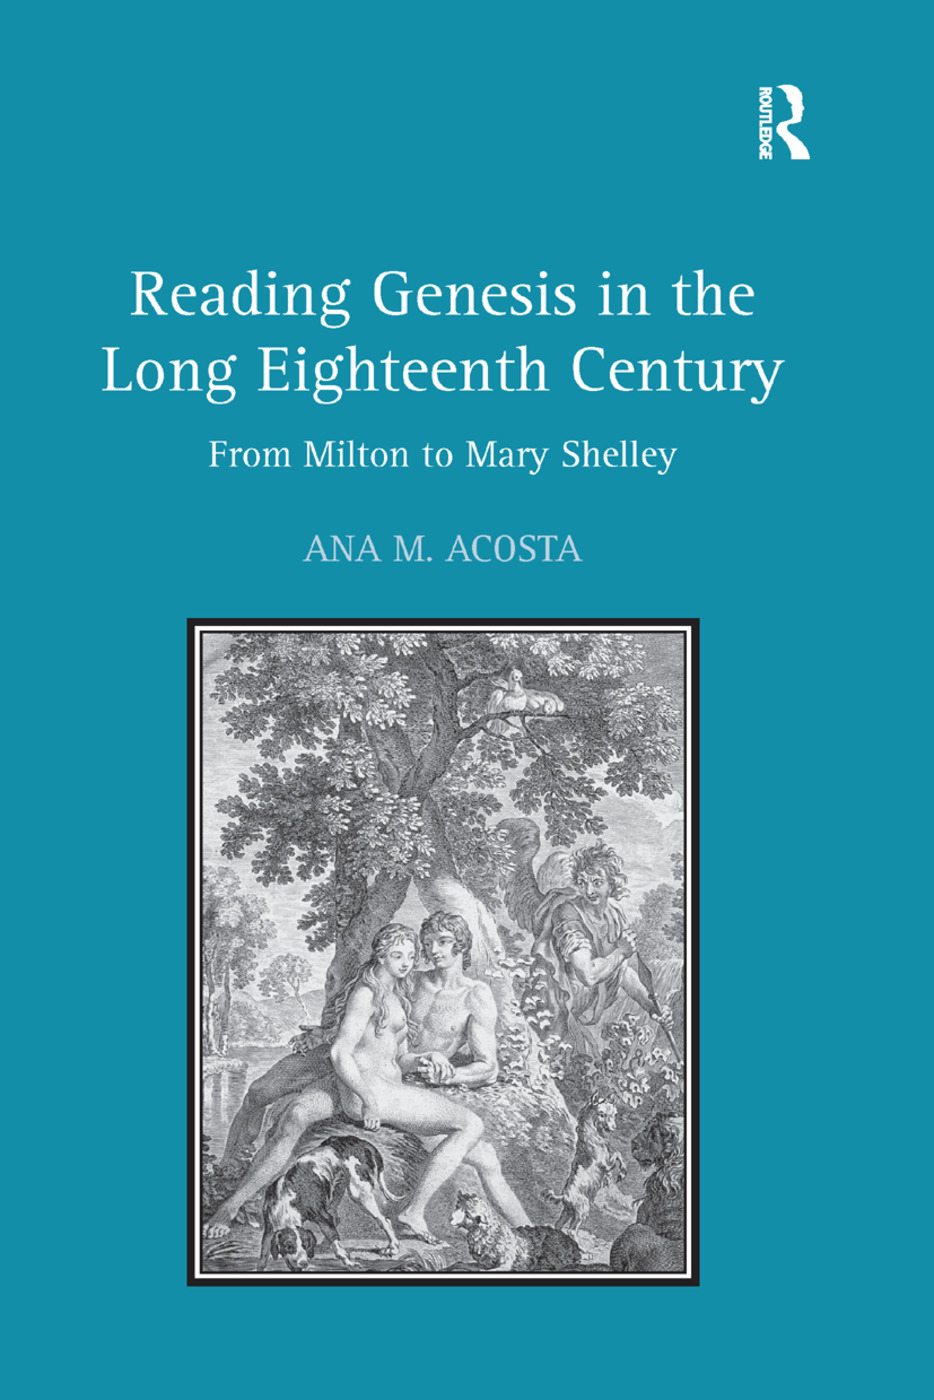 Reading Genesis in the Long Eighteenth Century